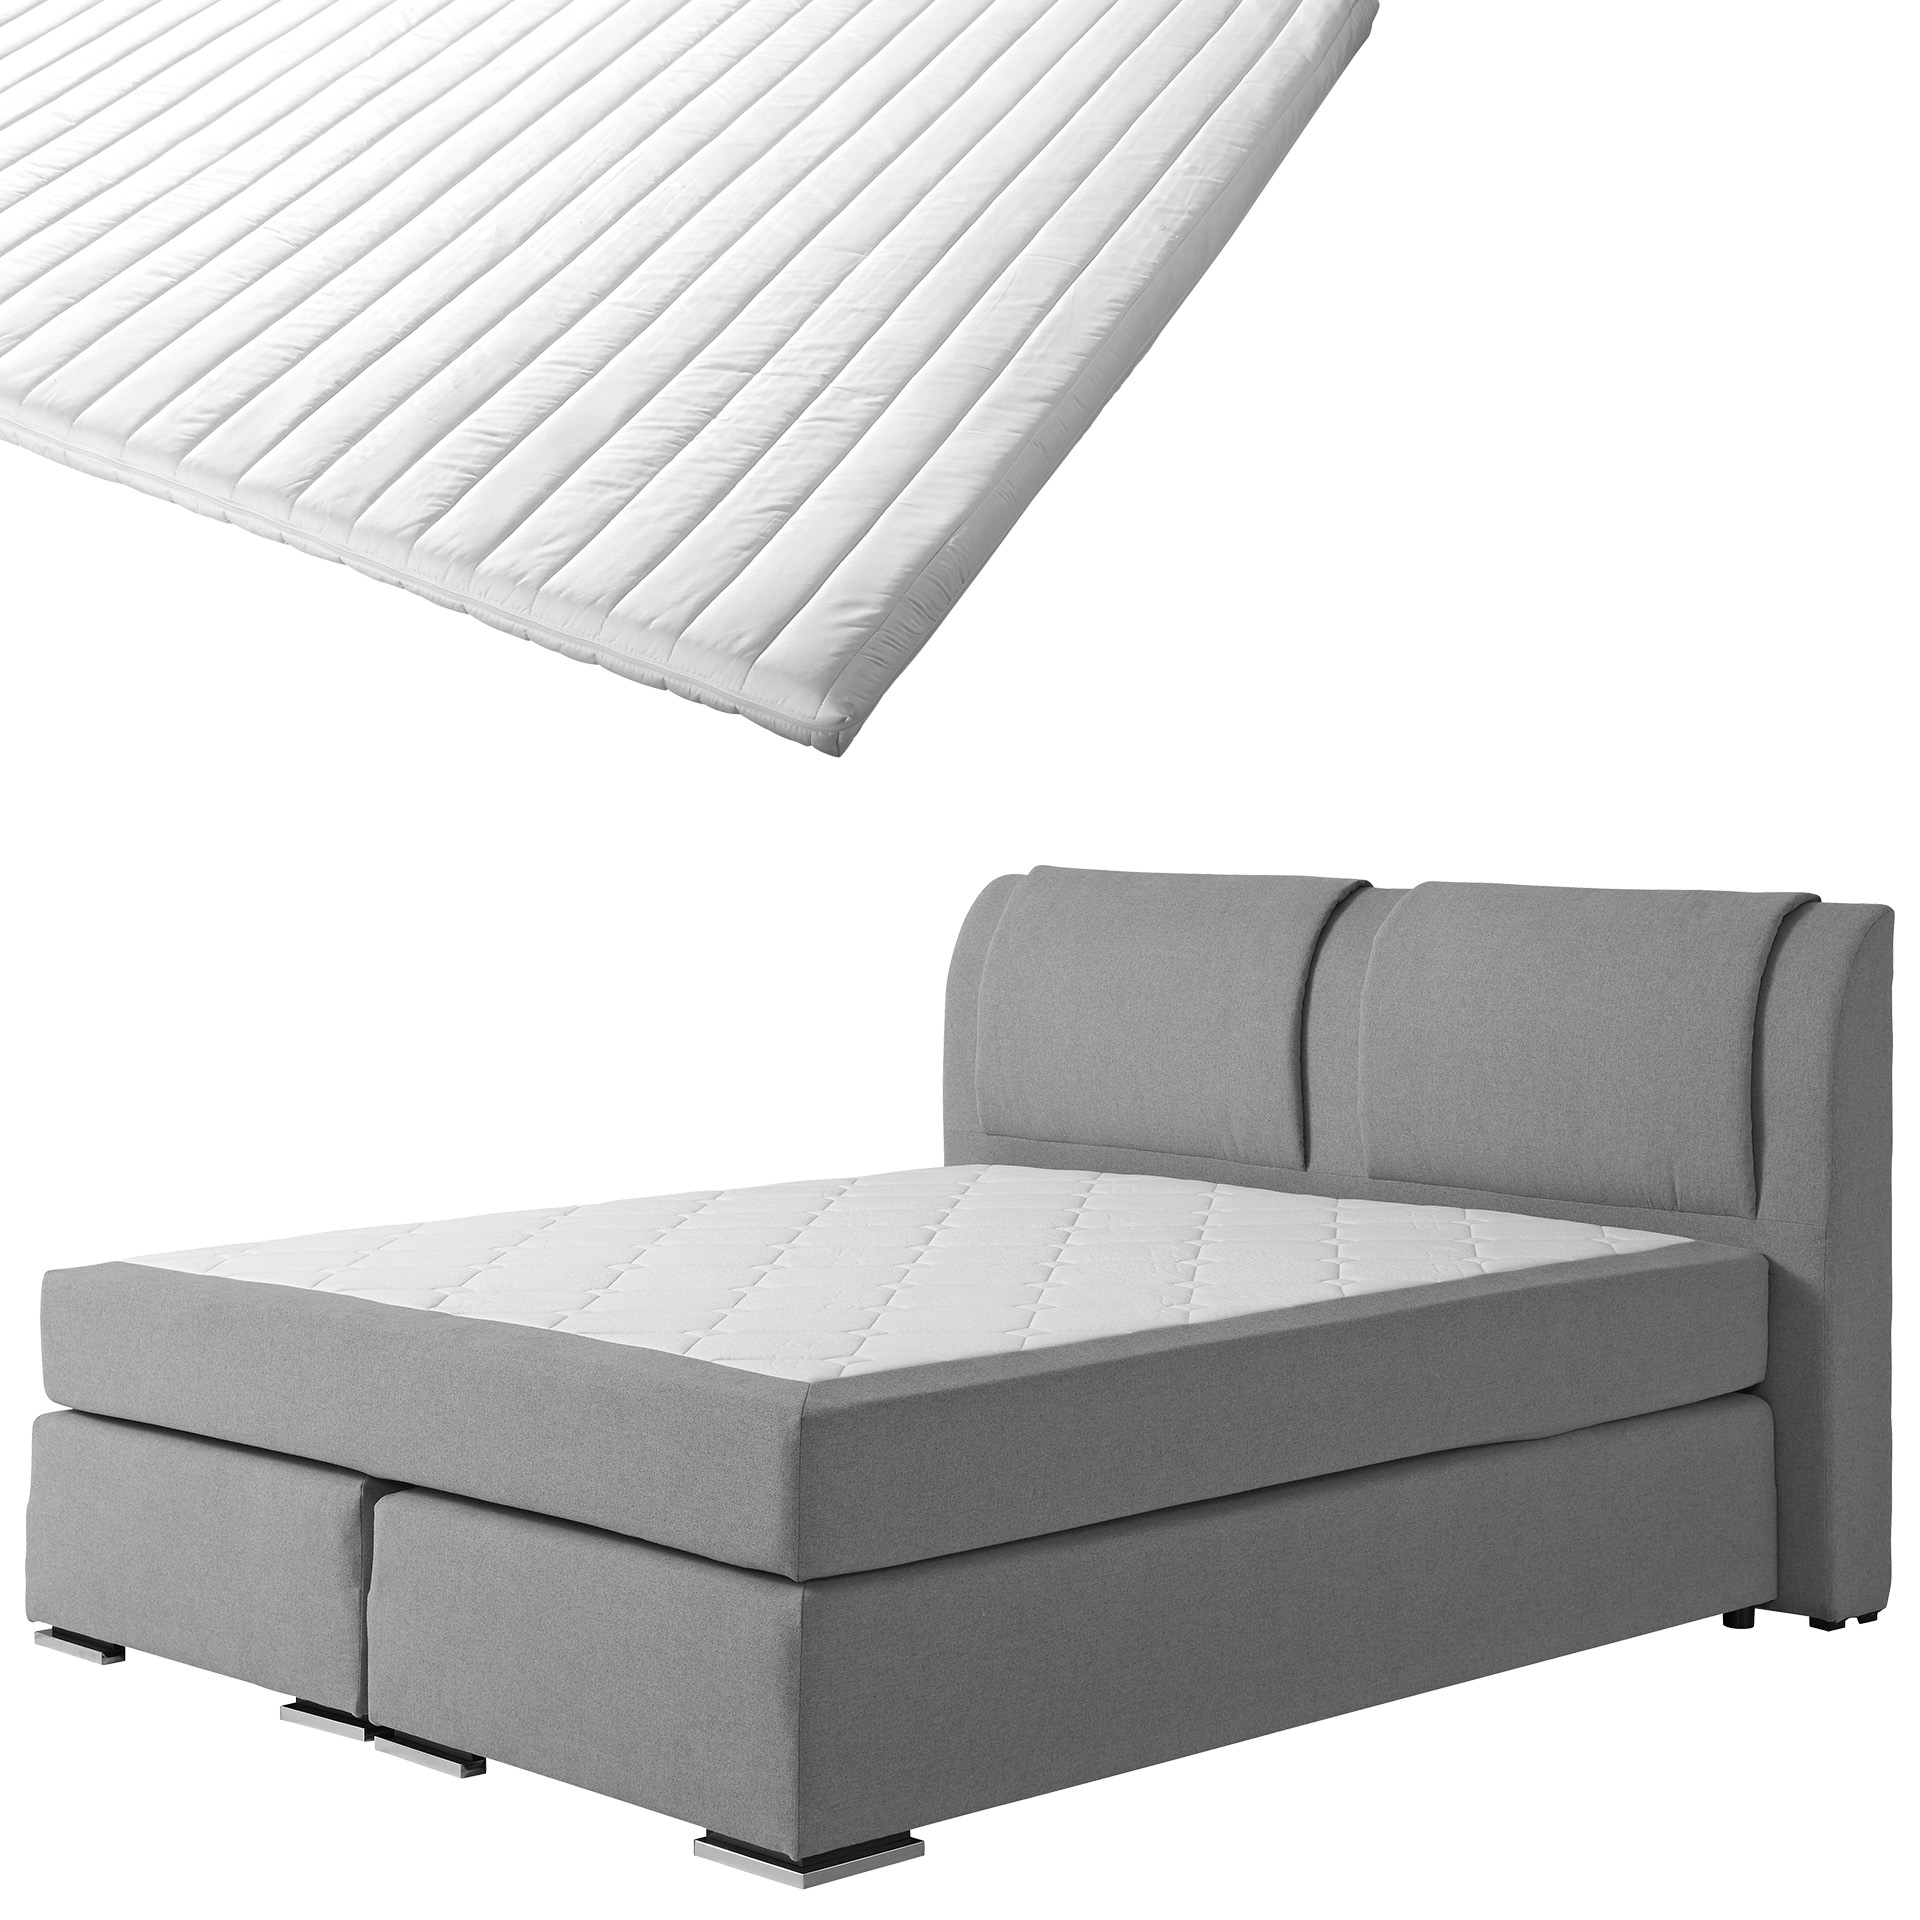 Boxspringbett-Set SUPERDREAM Himmerland/ErgoMAXX® Komfortschaum-Topper Stockholm (180x200)